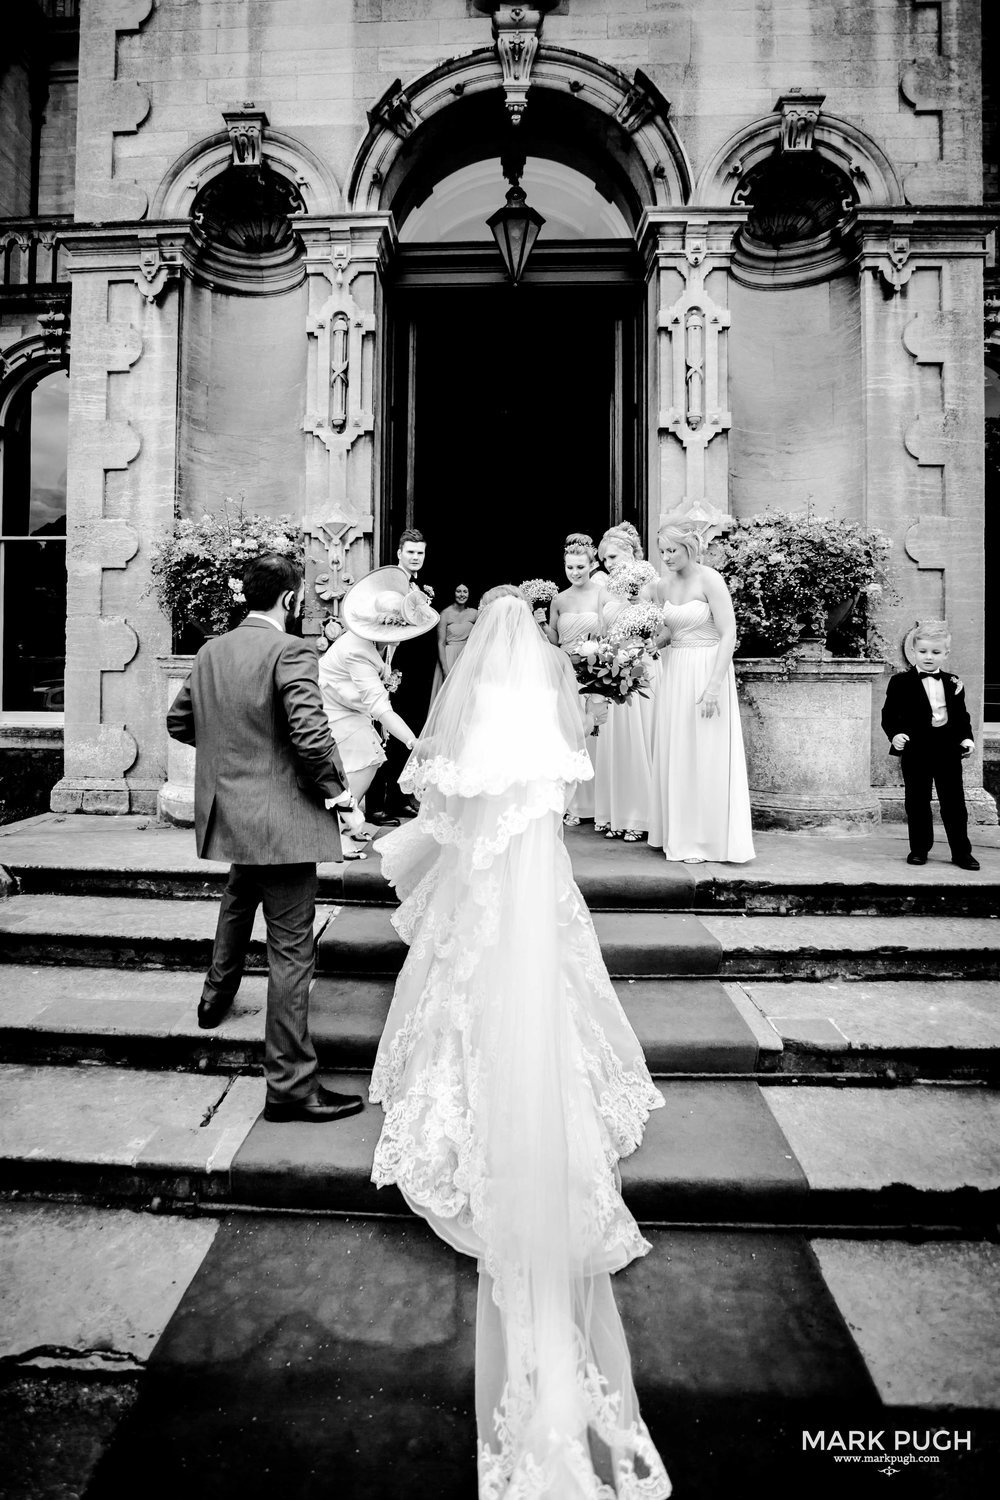 067 - Leah and Andy - fineART wedding photography at Stoke Rochford Hall NG33 5EJ by www.markpugh.com Mark Pugh of www.mpmedia.co.uk_.JPG